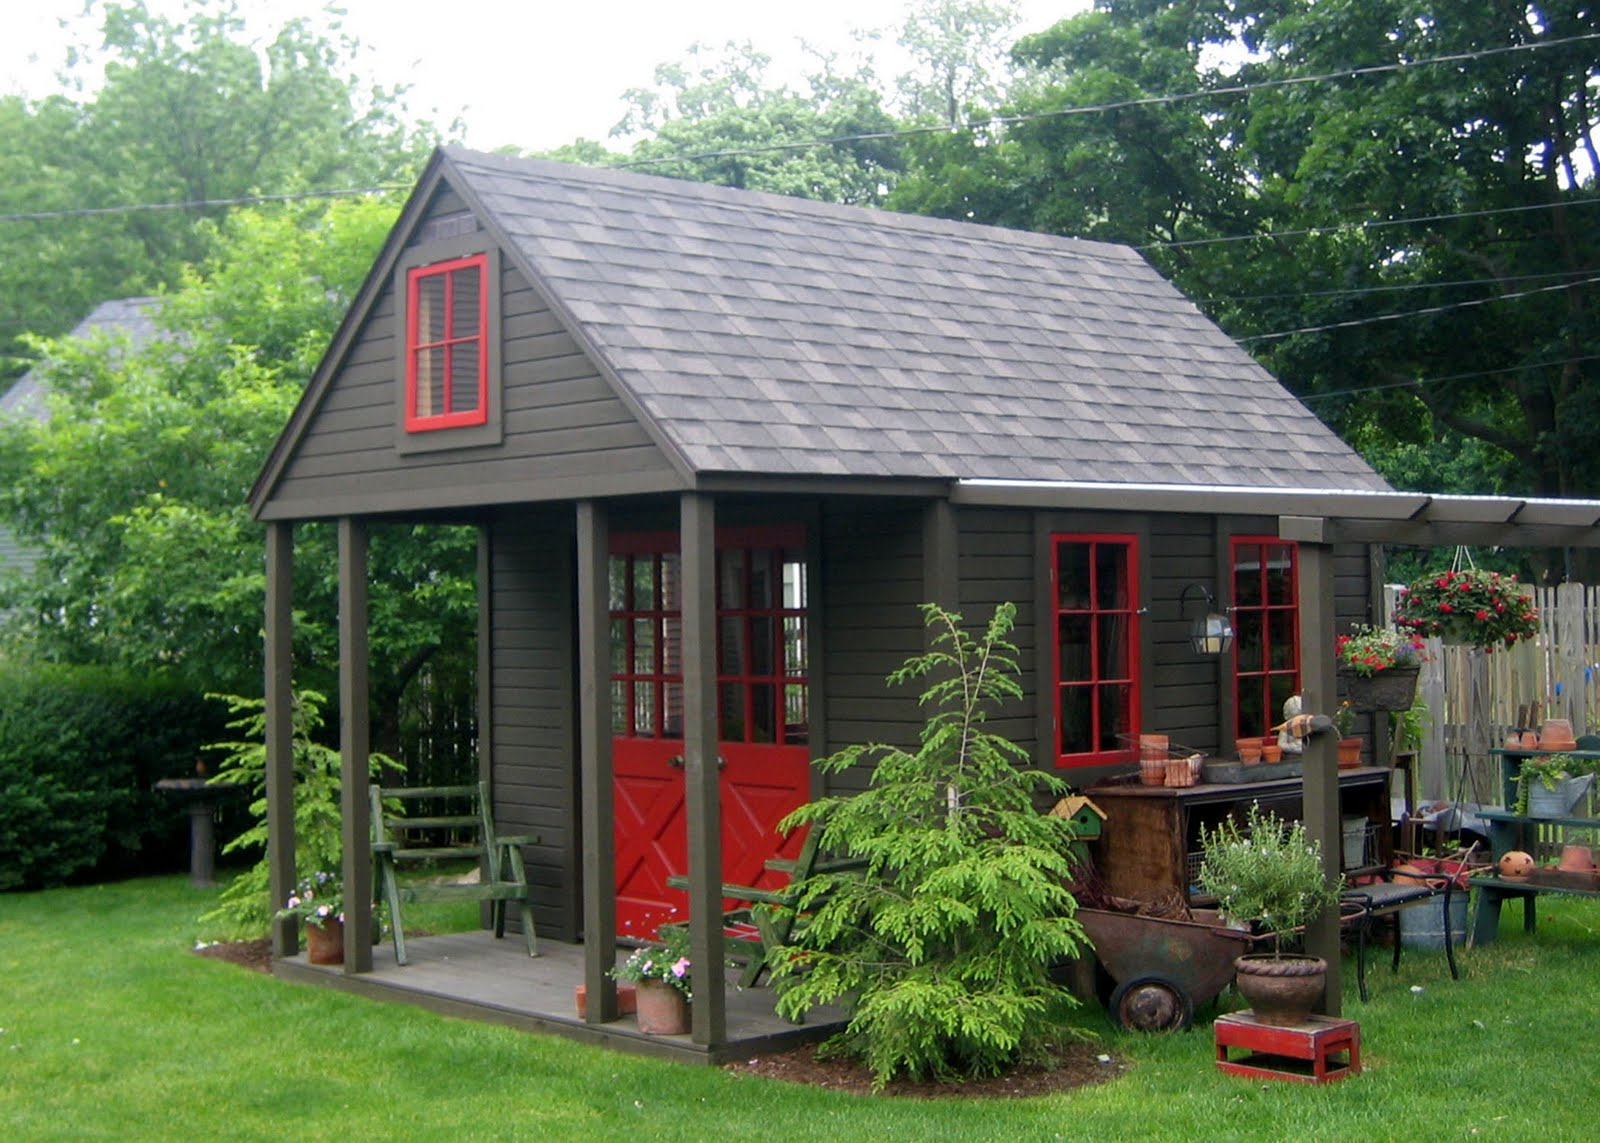 Nappanee home and garden club garden sheds porches for Garden shed pictures